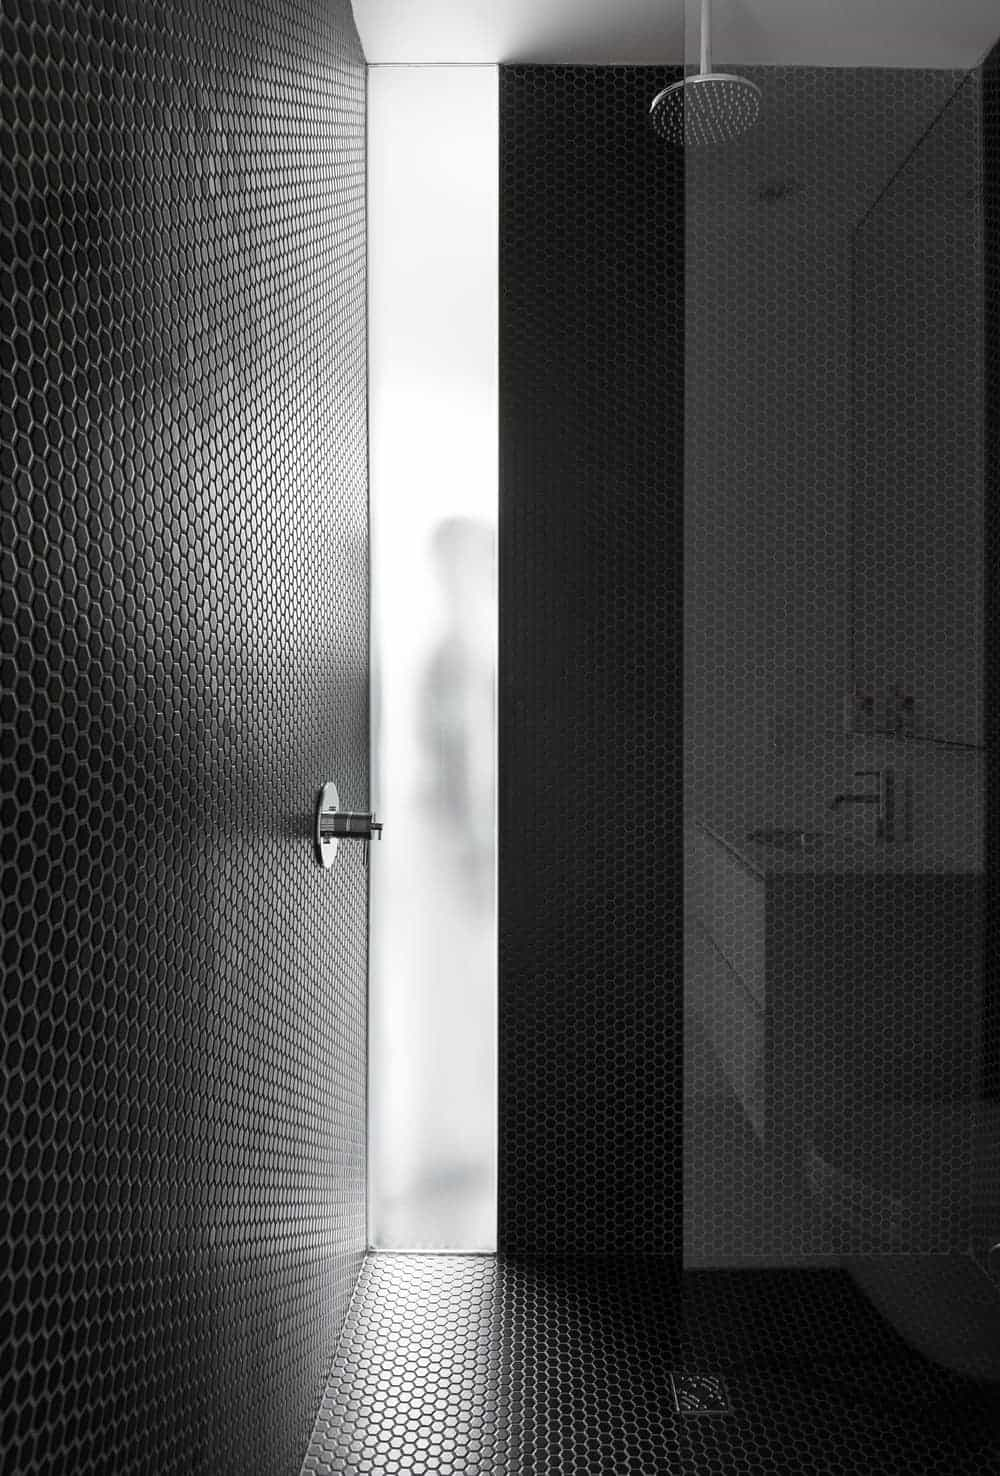 This shower area boasts small black hexagonal tiles that dominate the walls and flooring. The shower area is separated from the rest of the bathroom by a half glass wall.